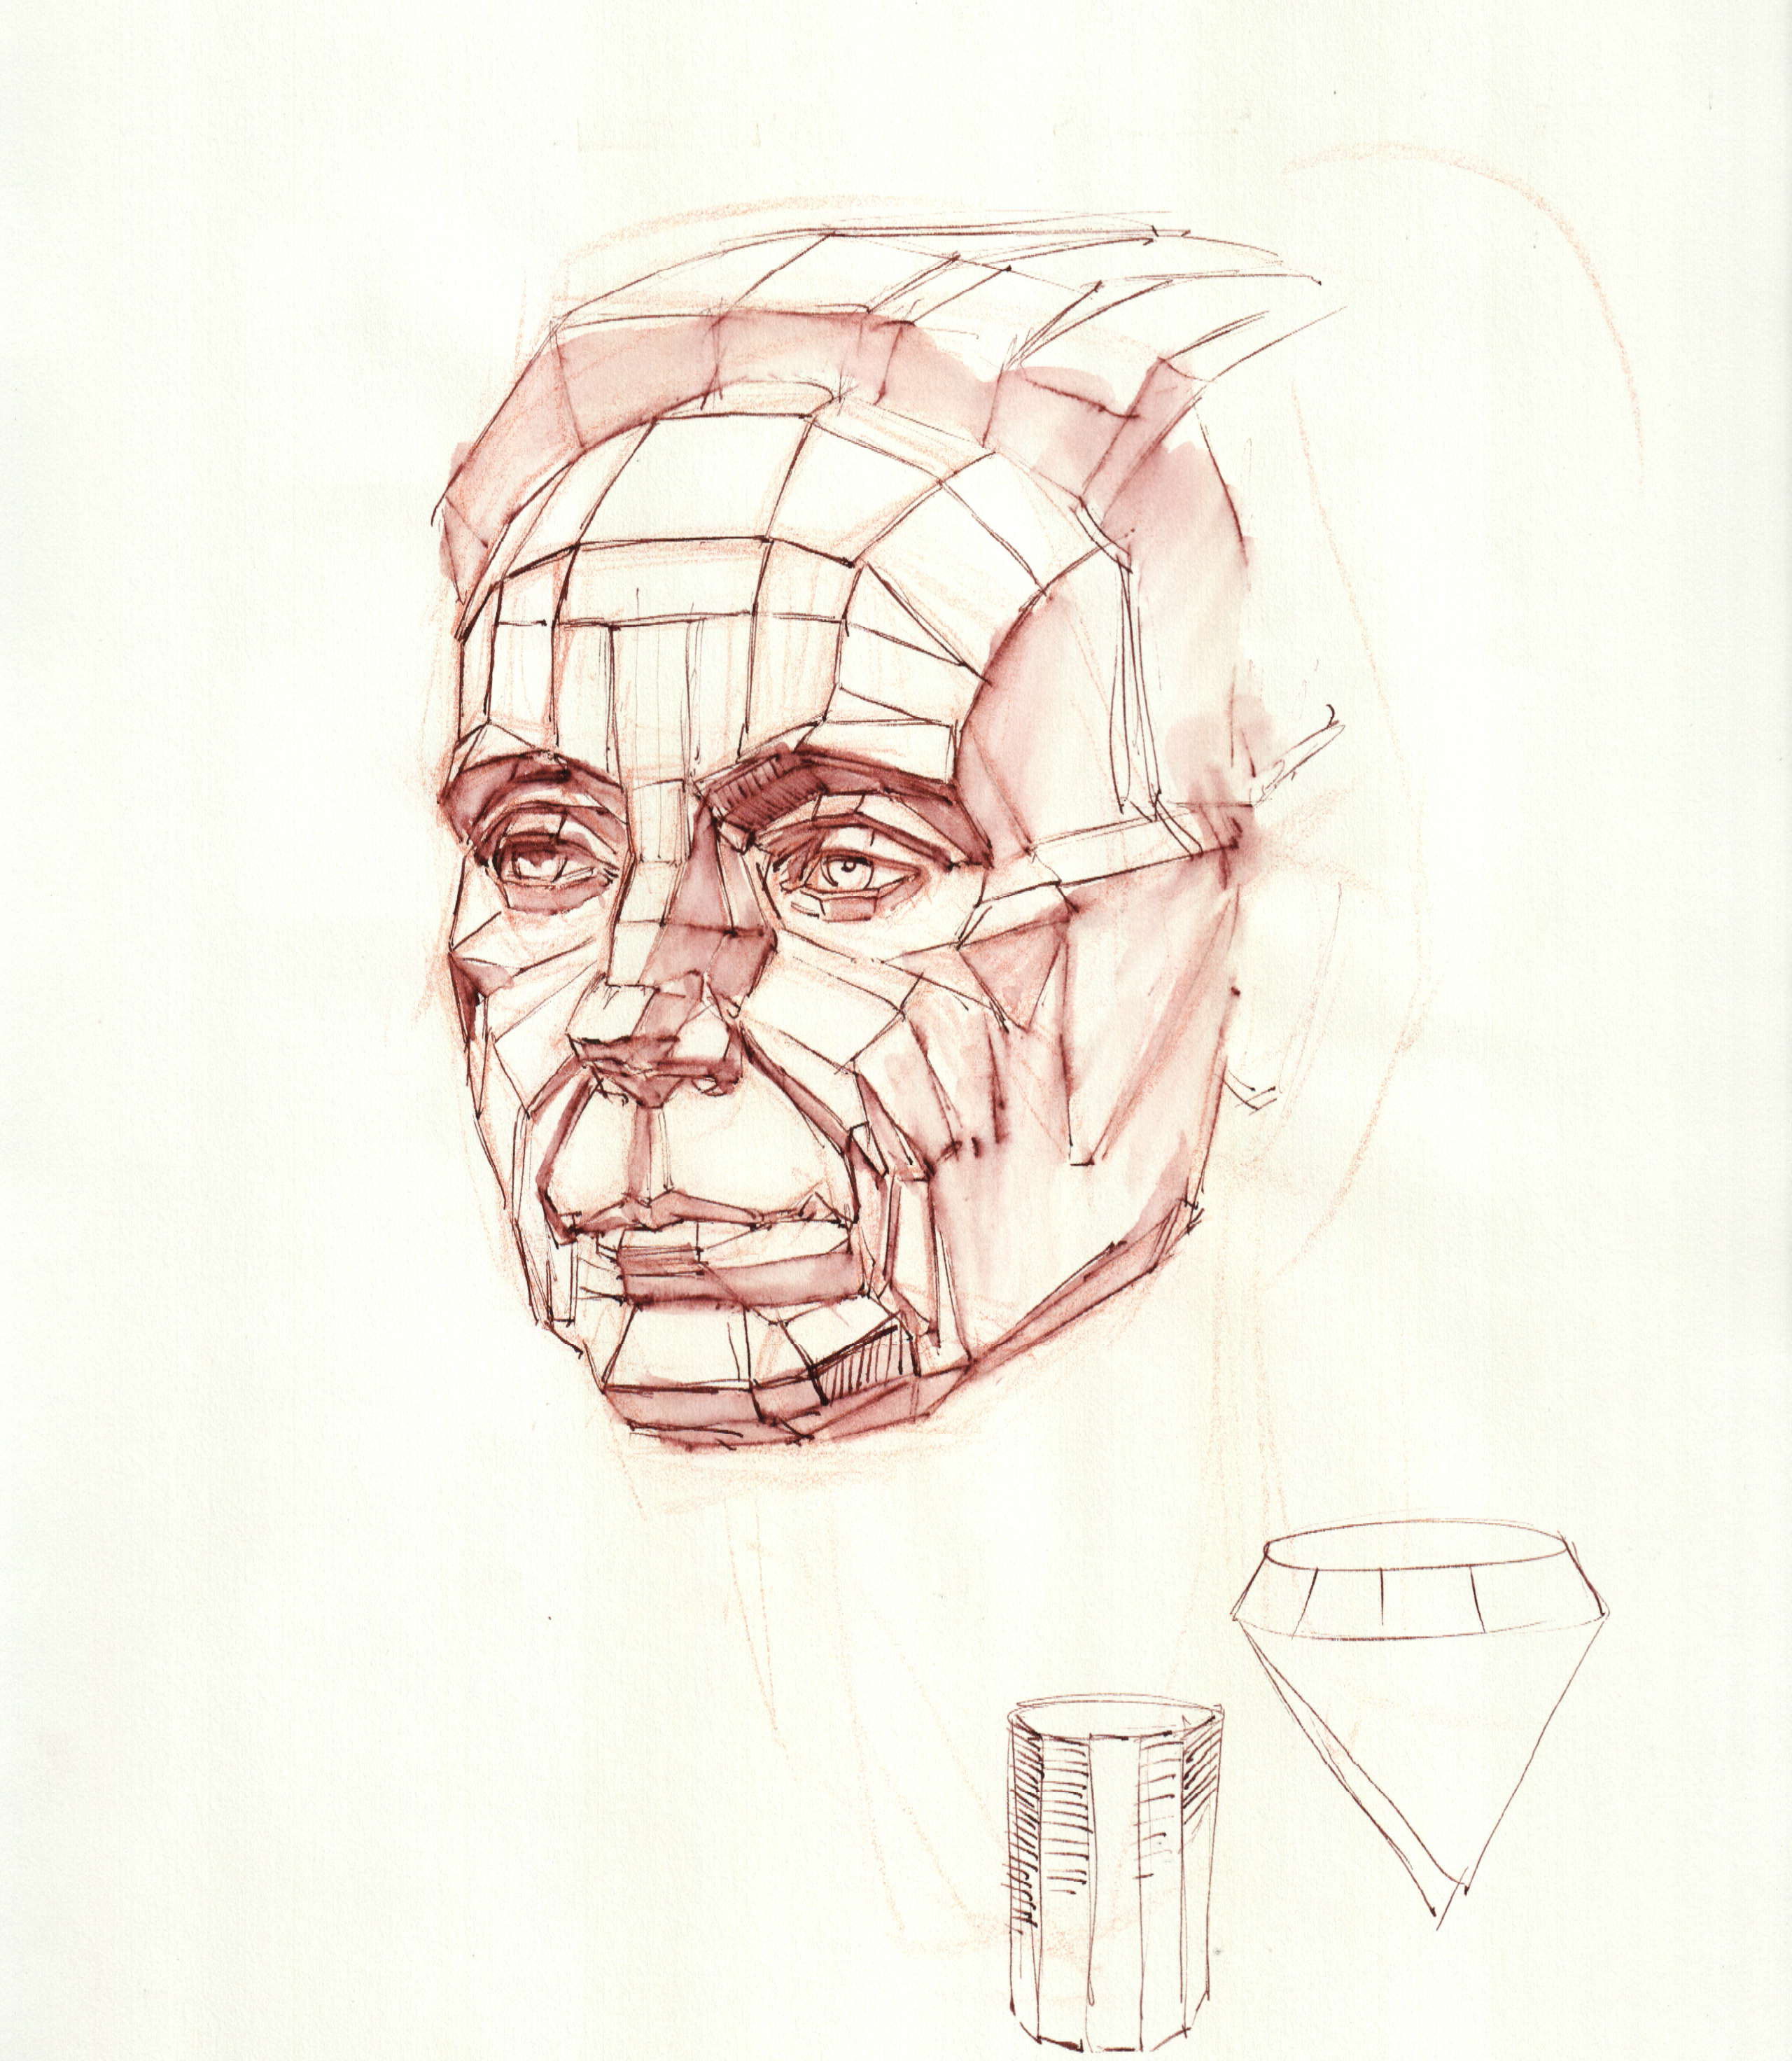 VILPPU HEAD DRAWING AND ANATOMY EBOOK DOWNLOAD